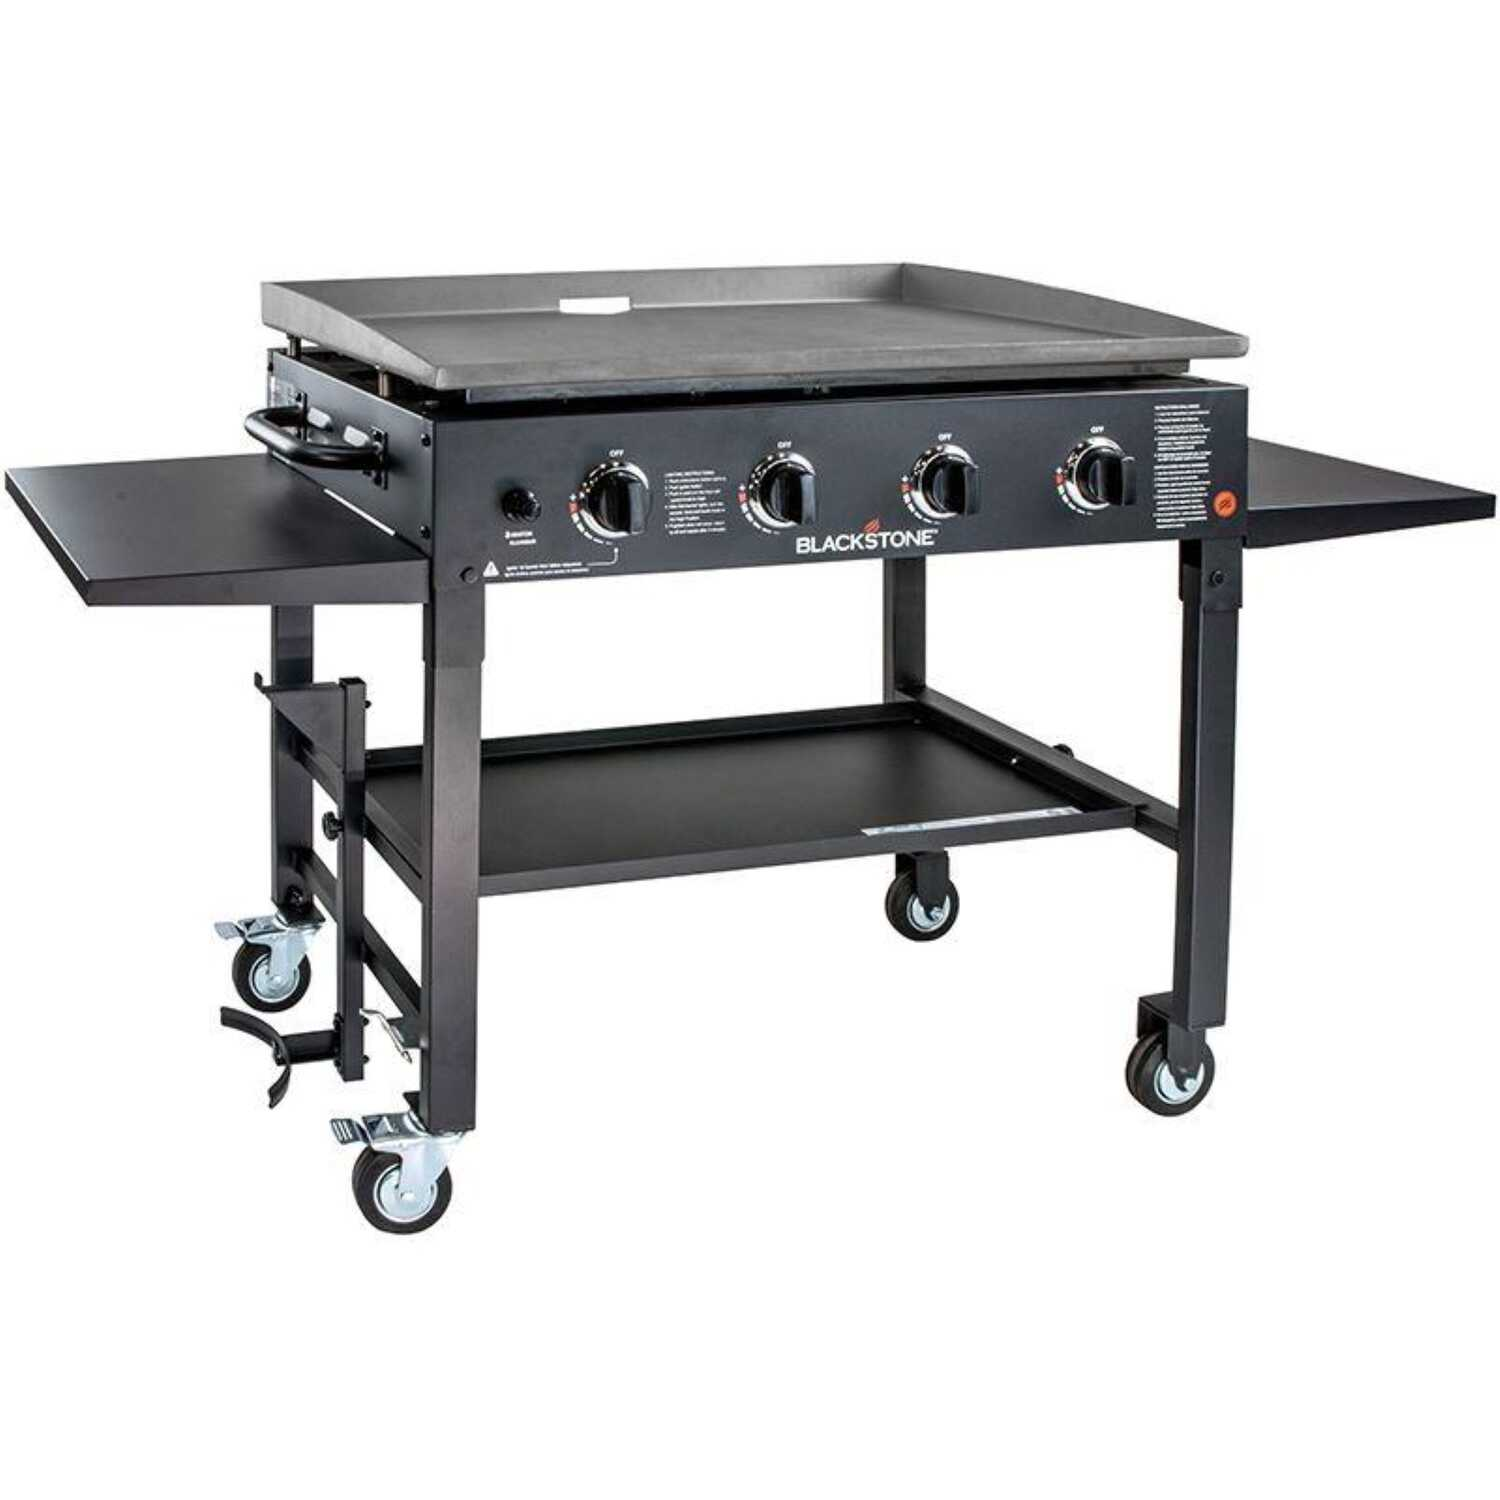 Blackstone  4 burners Propane  Griddle Grill  Black  60000 BTU